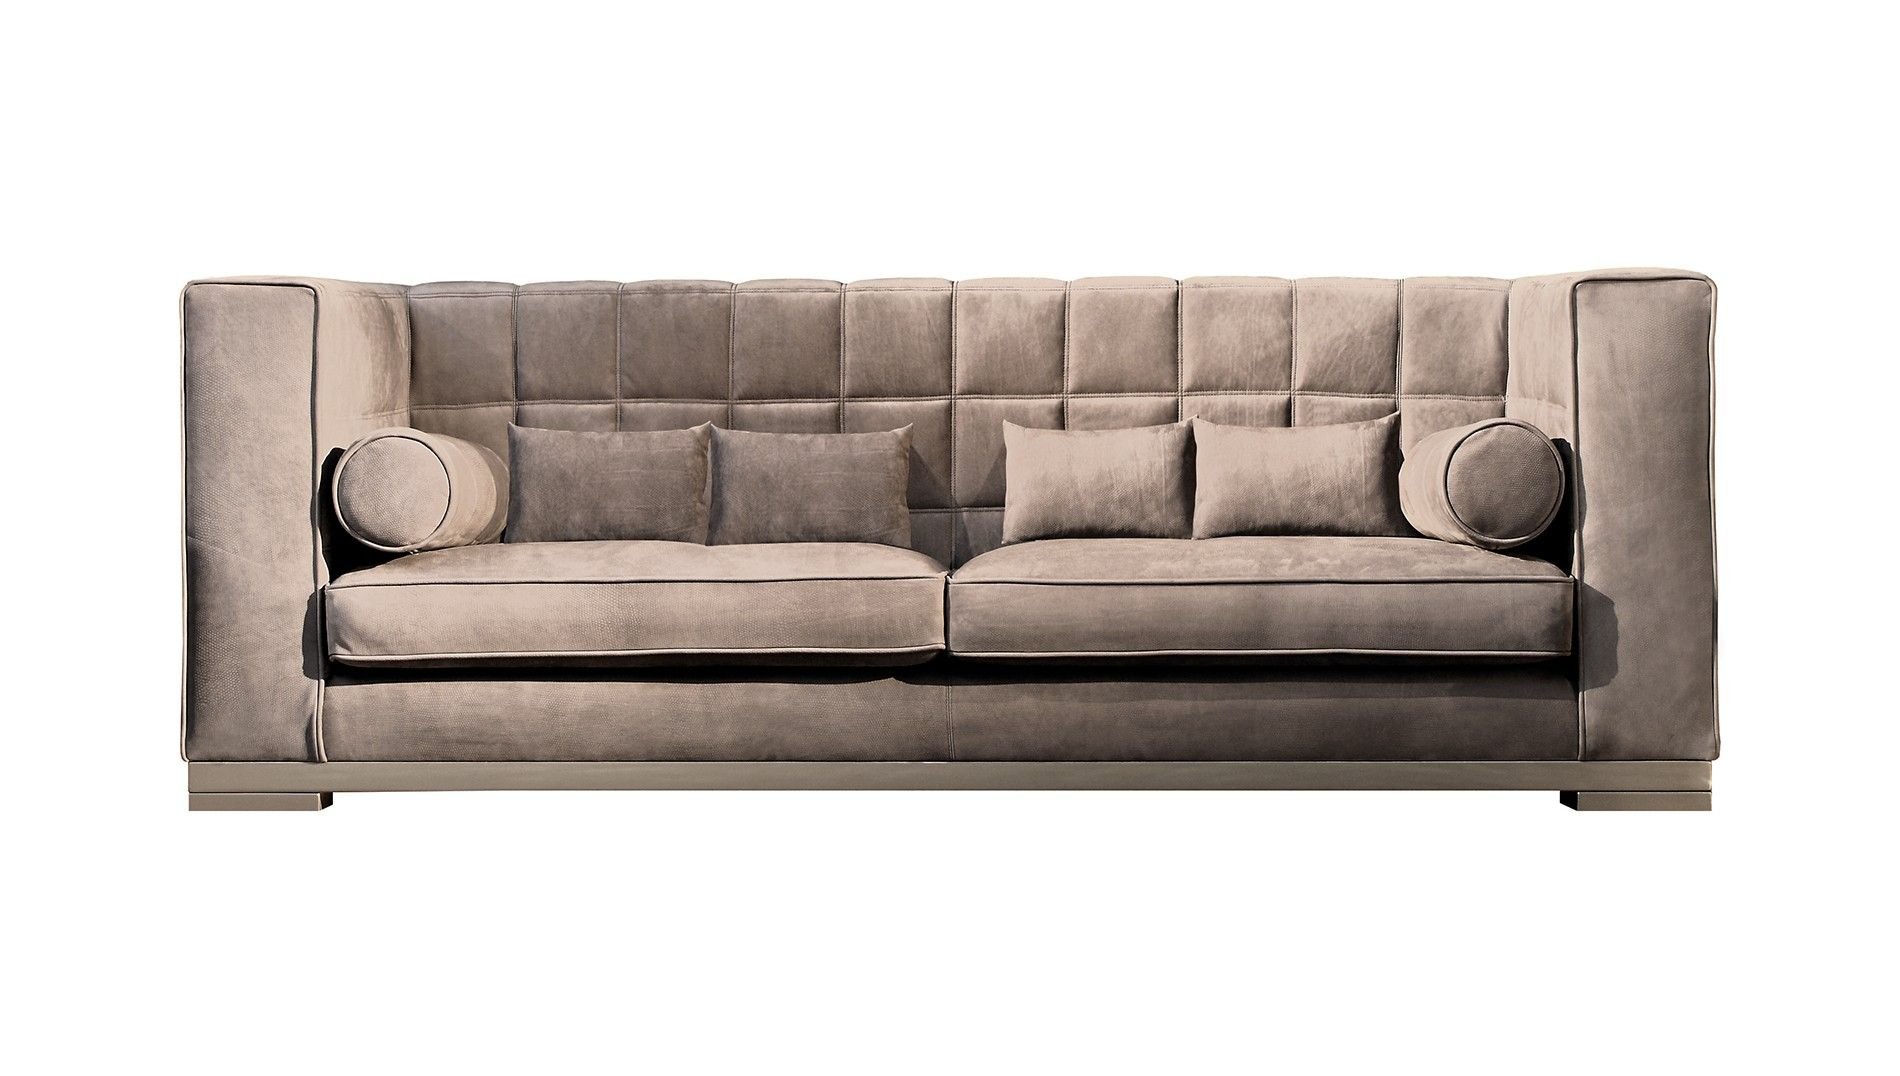 Buy Capital Kapiente Sofa Online At Luxdeco Discover Luxury Collections From The World 39 S Leading Homeware Brands Leather Sofa Art Deco Sofa Luxury Sofa